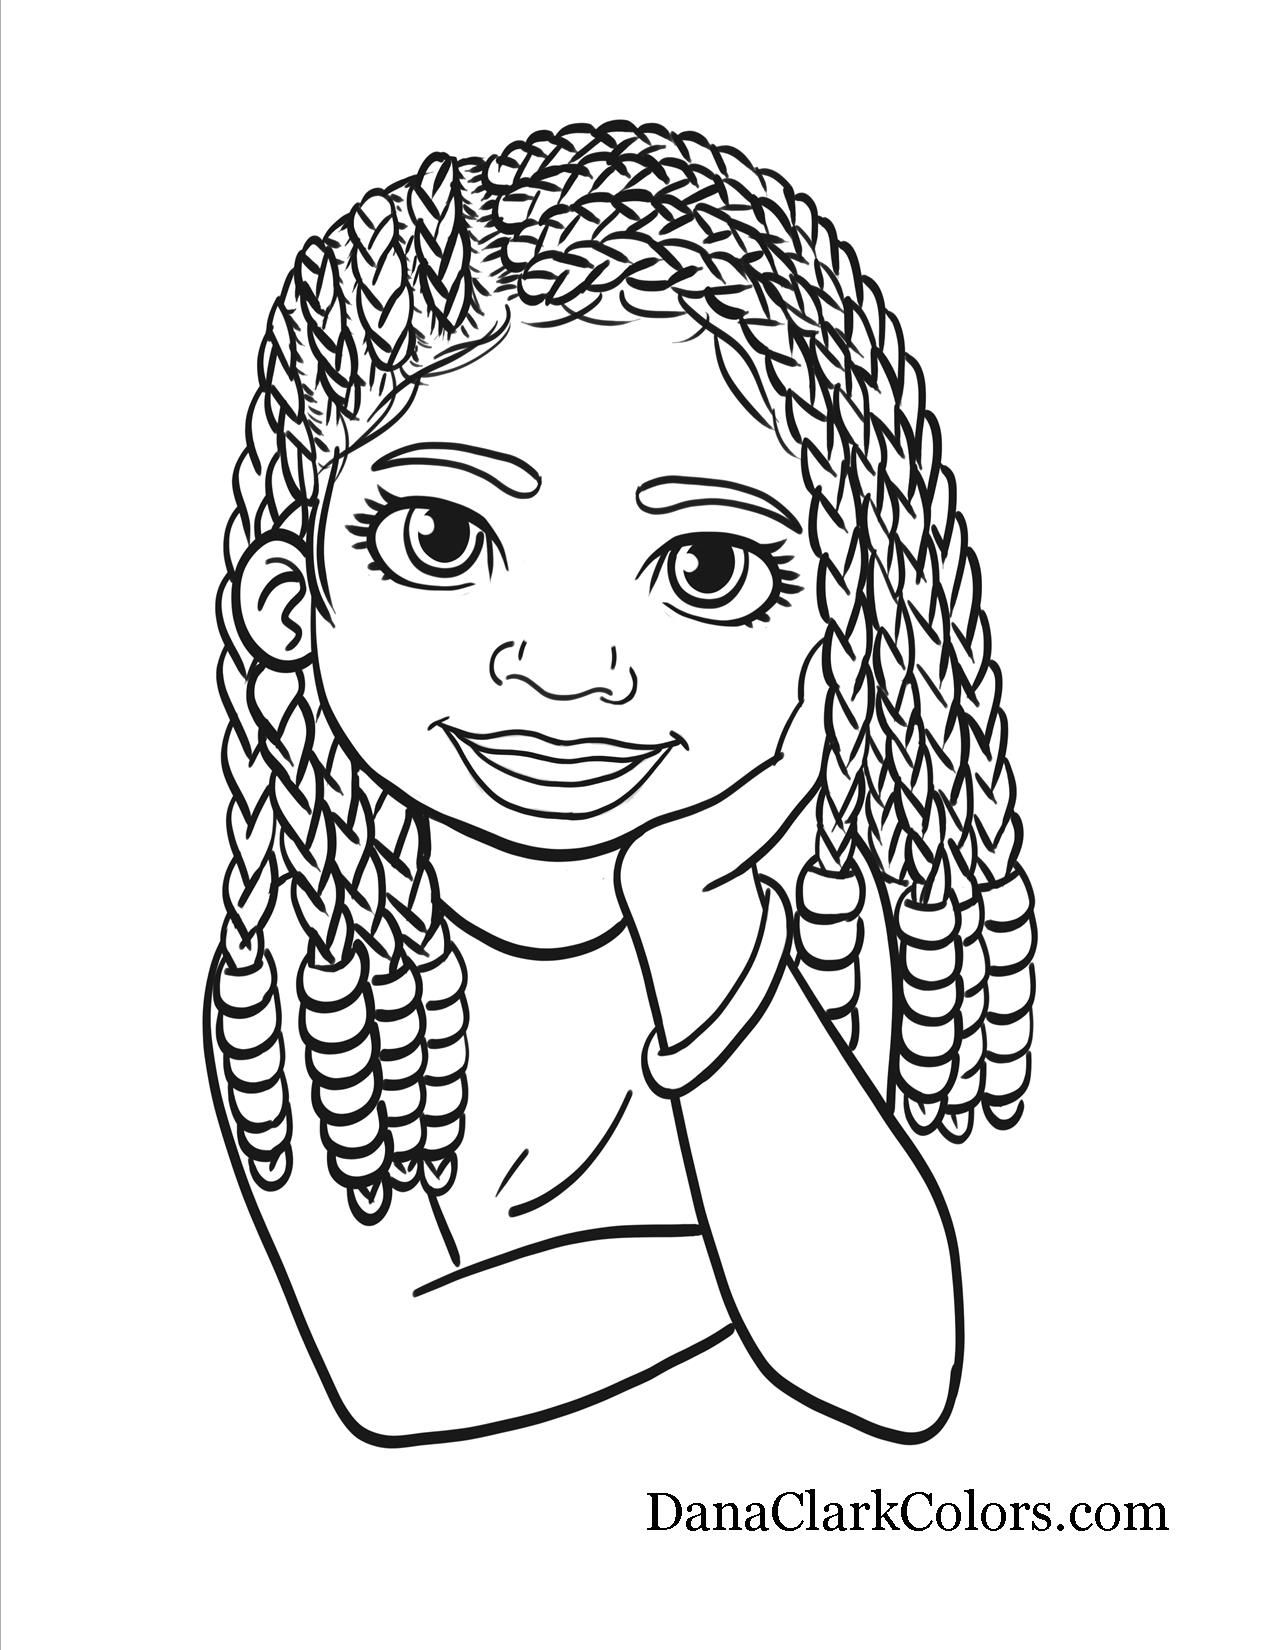 Afro Coloring Pages At Getcolorings